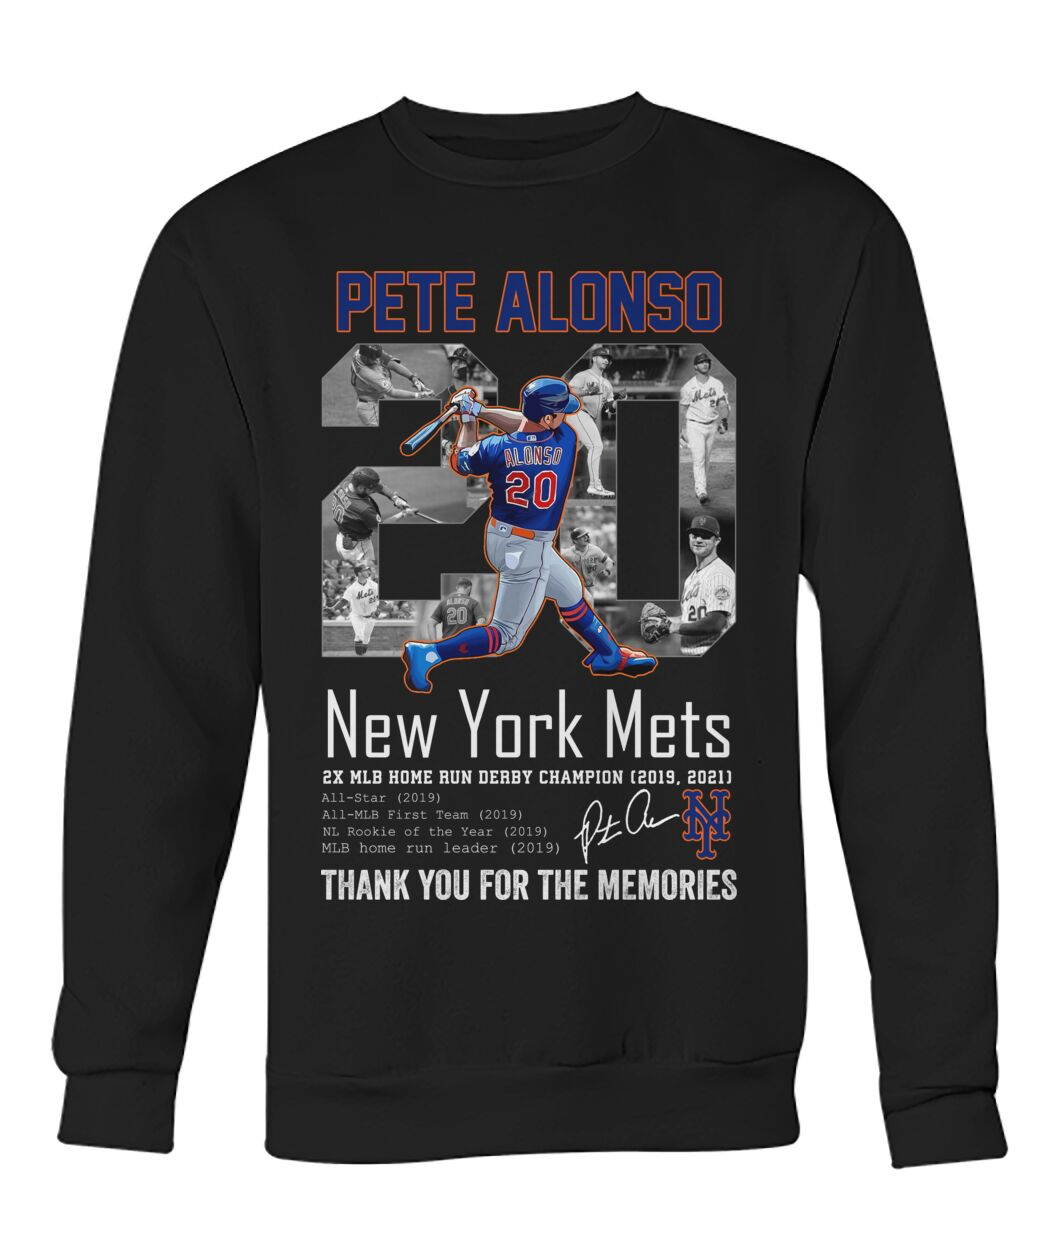 Pete alonso 20 new york mets thank you for the memories shirt 11